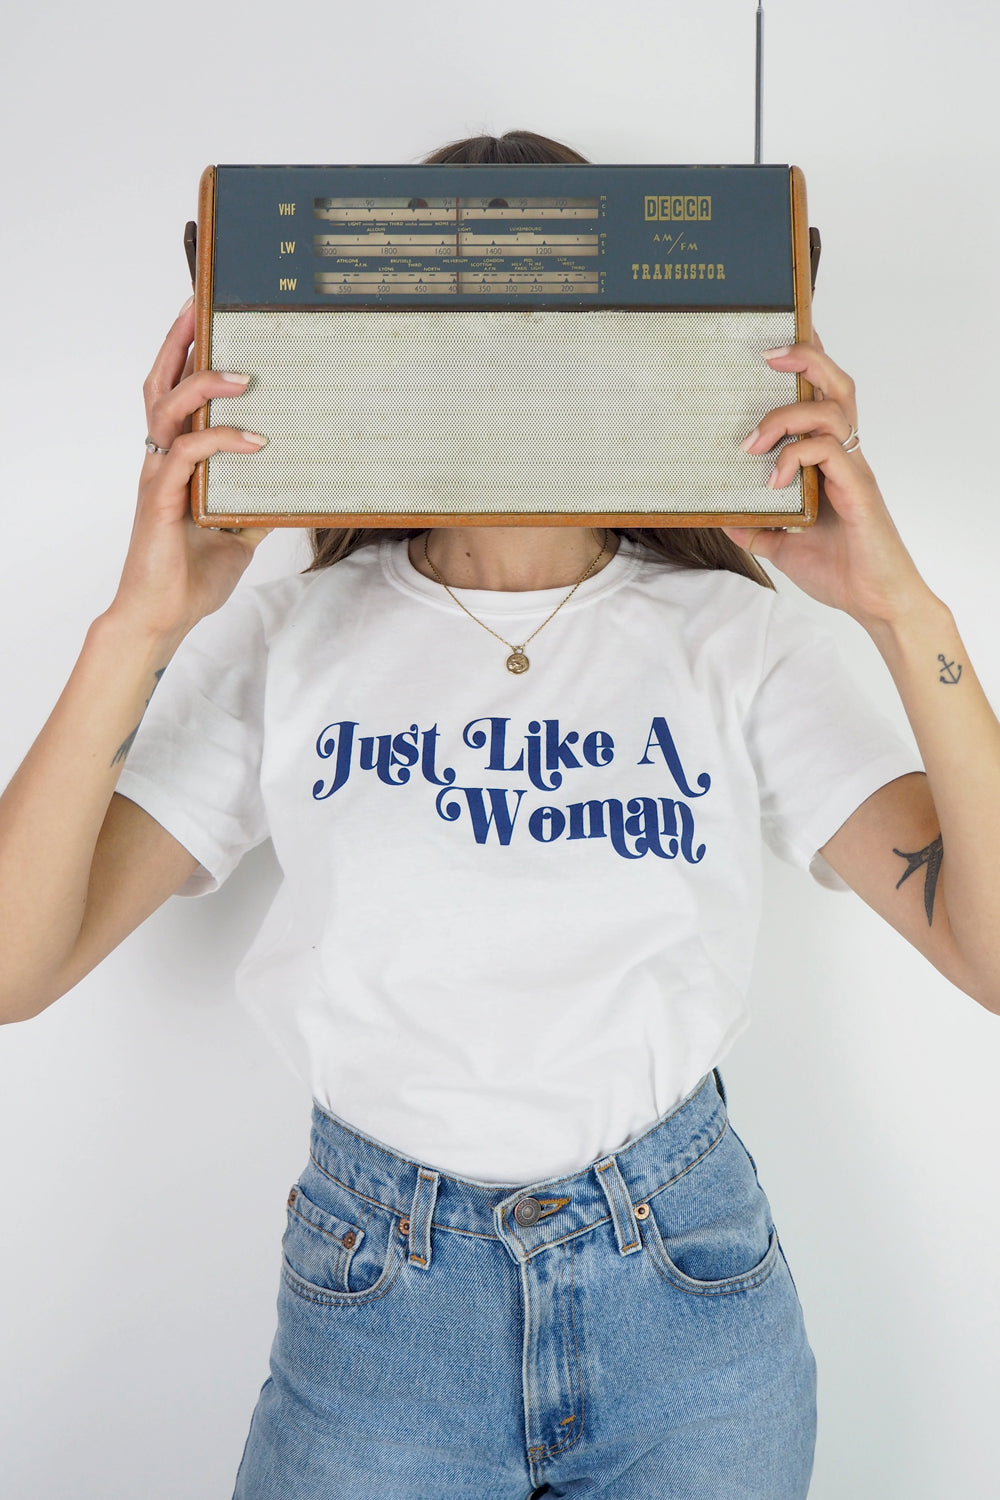 Just Like a woman retro slogan t-shirt